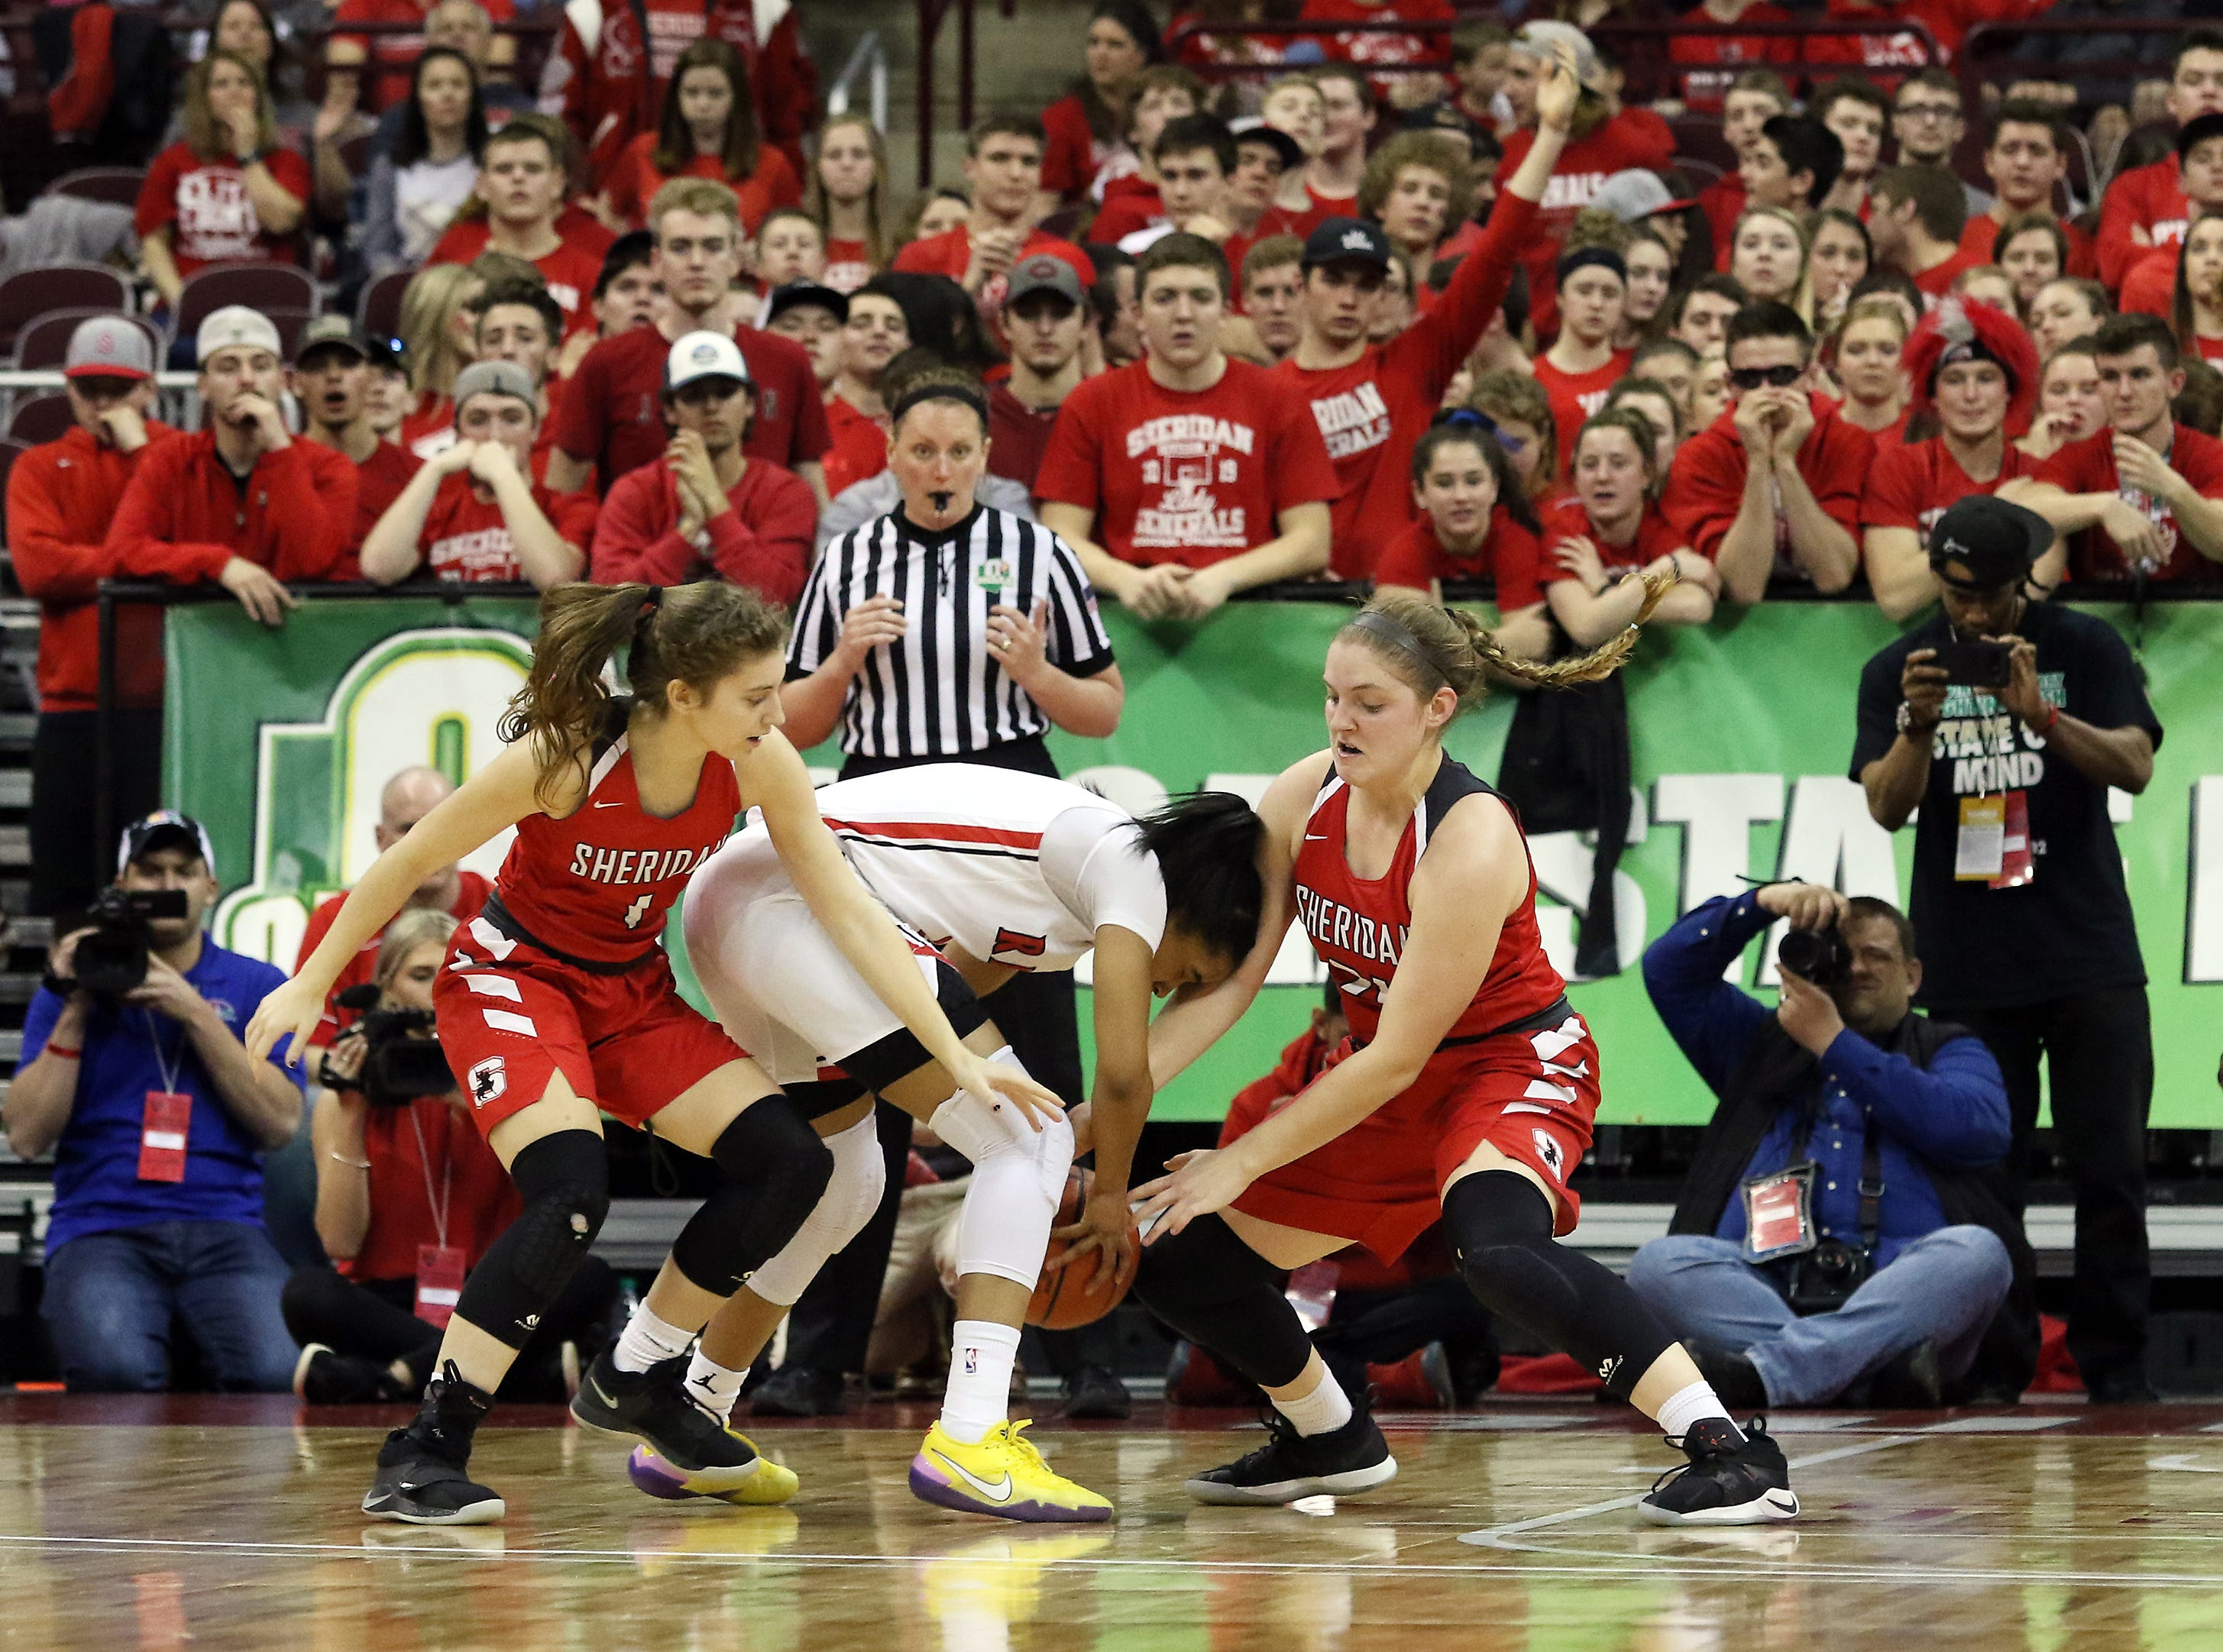 Sheridan's Aubrie White and Kendyl Mick defend against Toledo Rogers during the DII state semis in Columbus on Thursday.